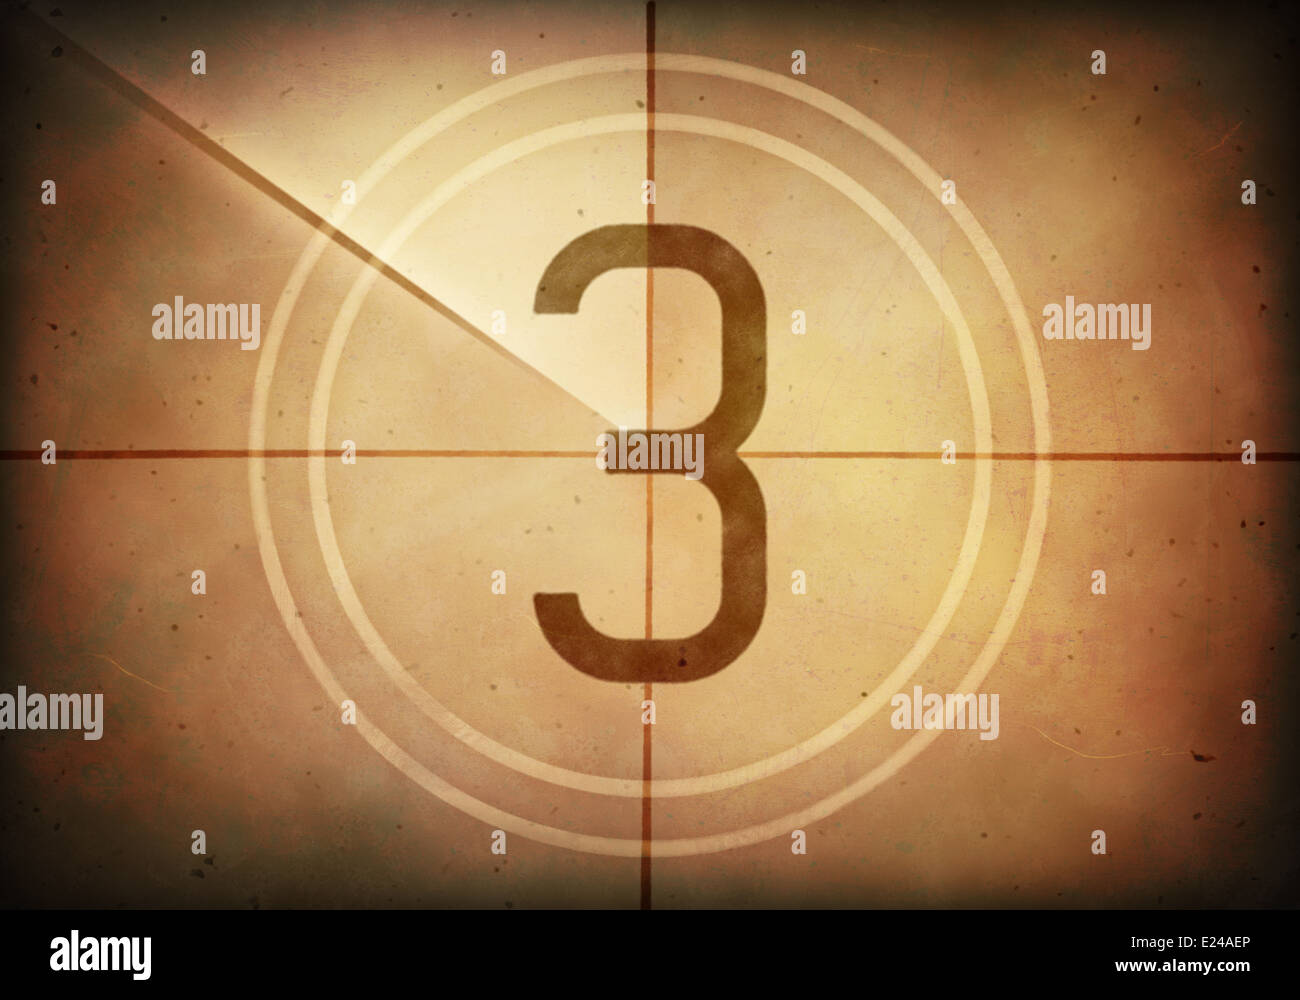 Countdown on the old movie screen. High resolution image with detailed quality. - Stock Image